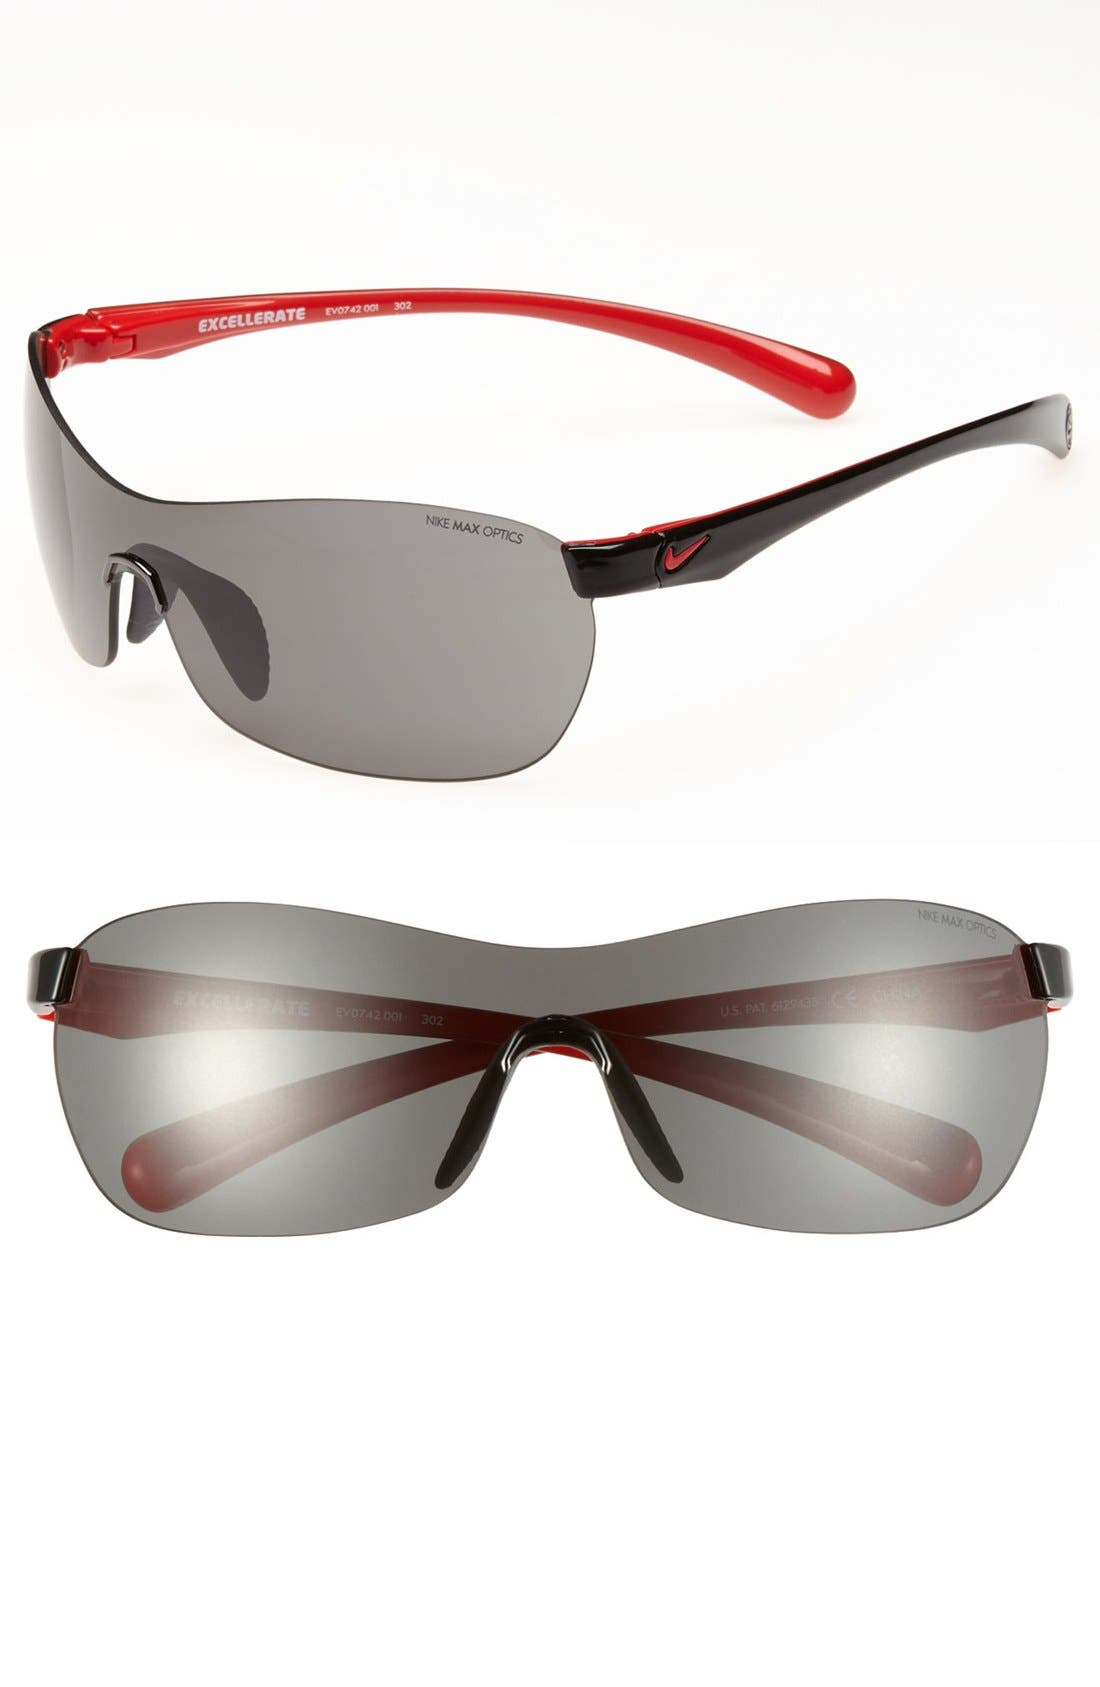 Main Image - Nike 'Excellerate' 62mm Sunglasses